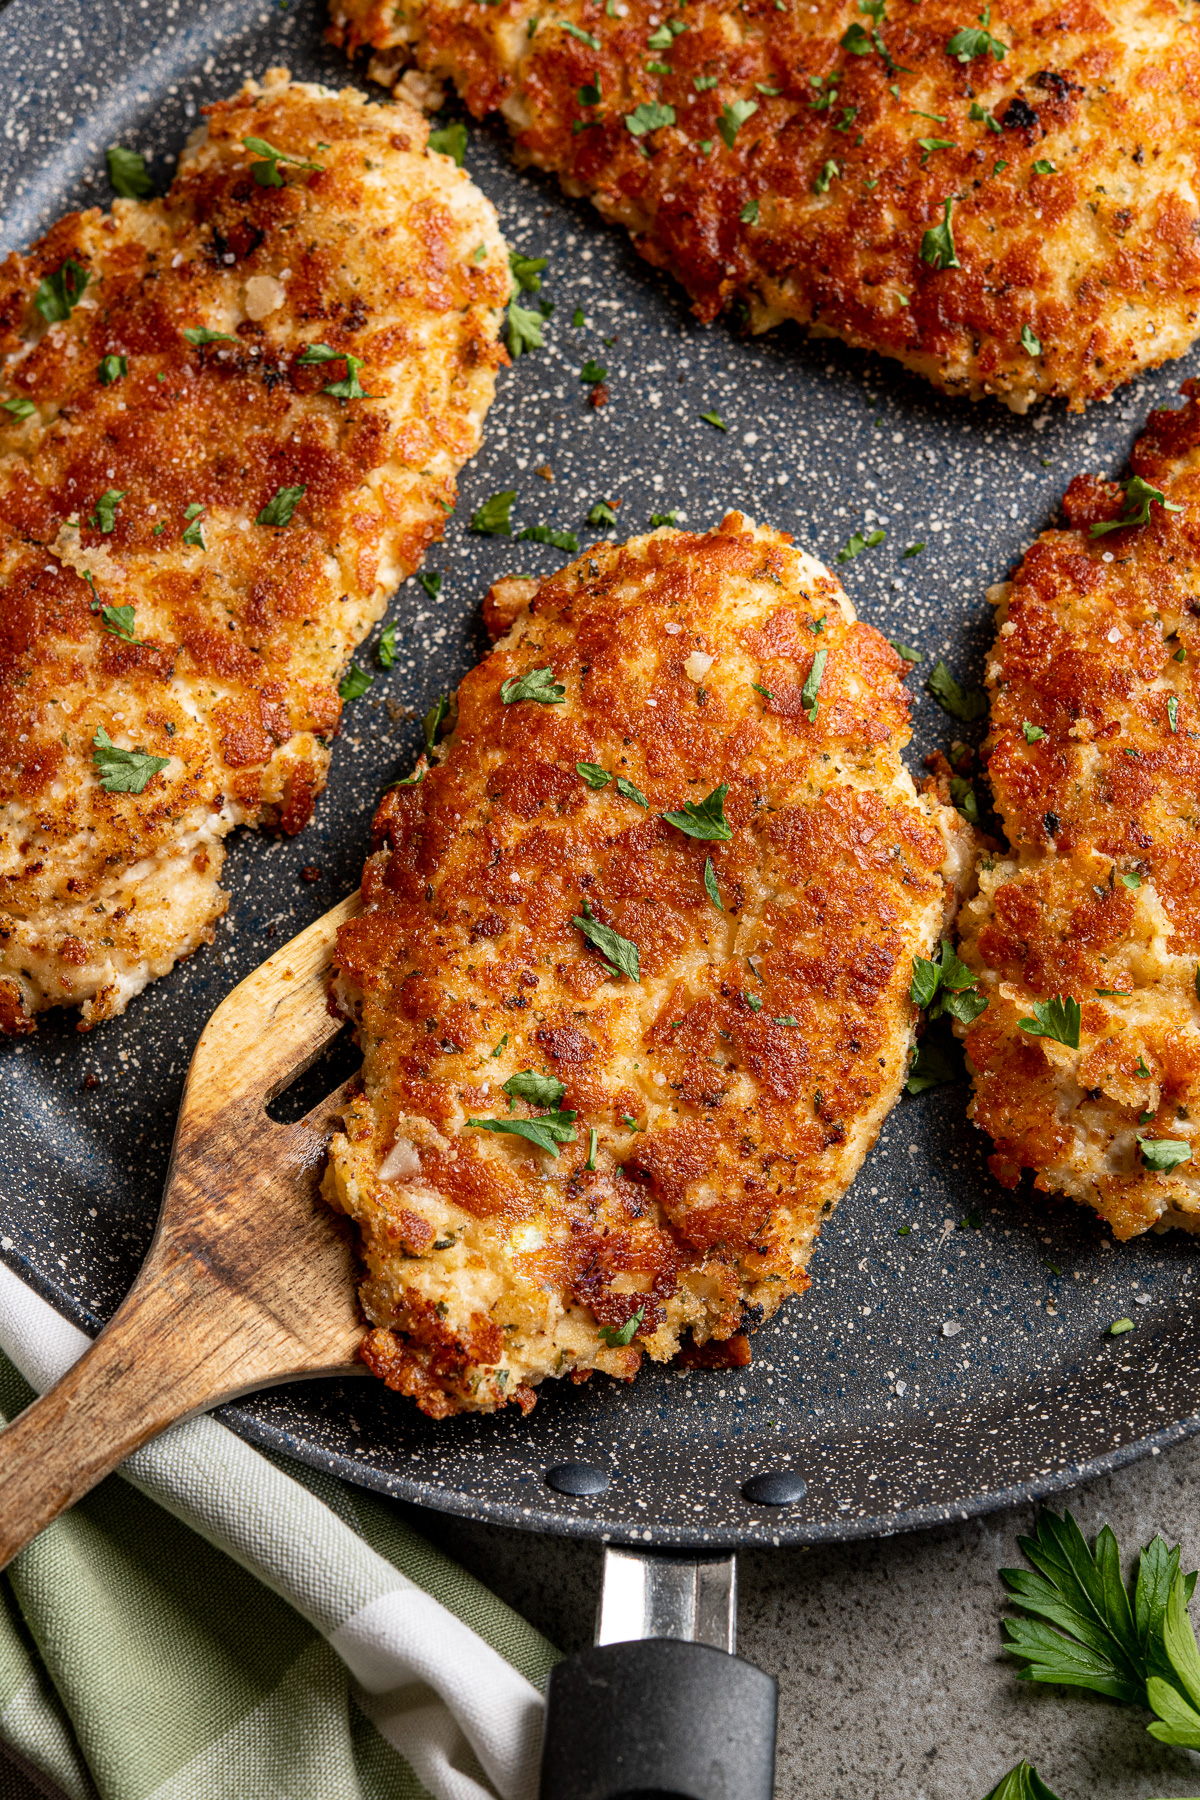 close up of Golden Parmesan Crusted Chicken cutlets on frying pan with wooden spatula